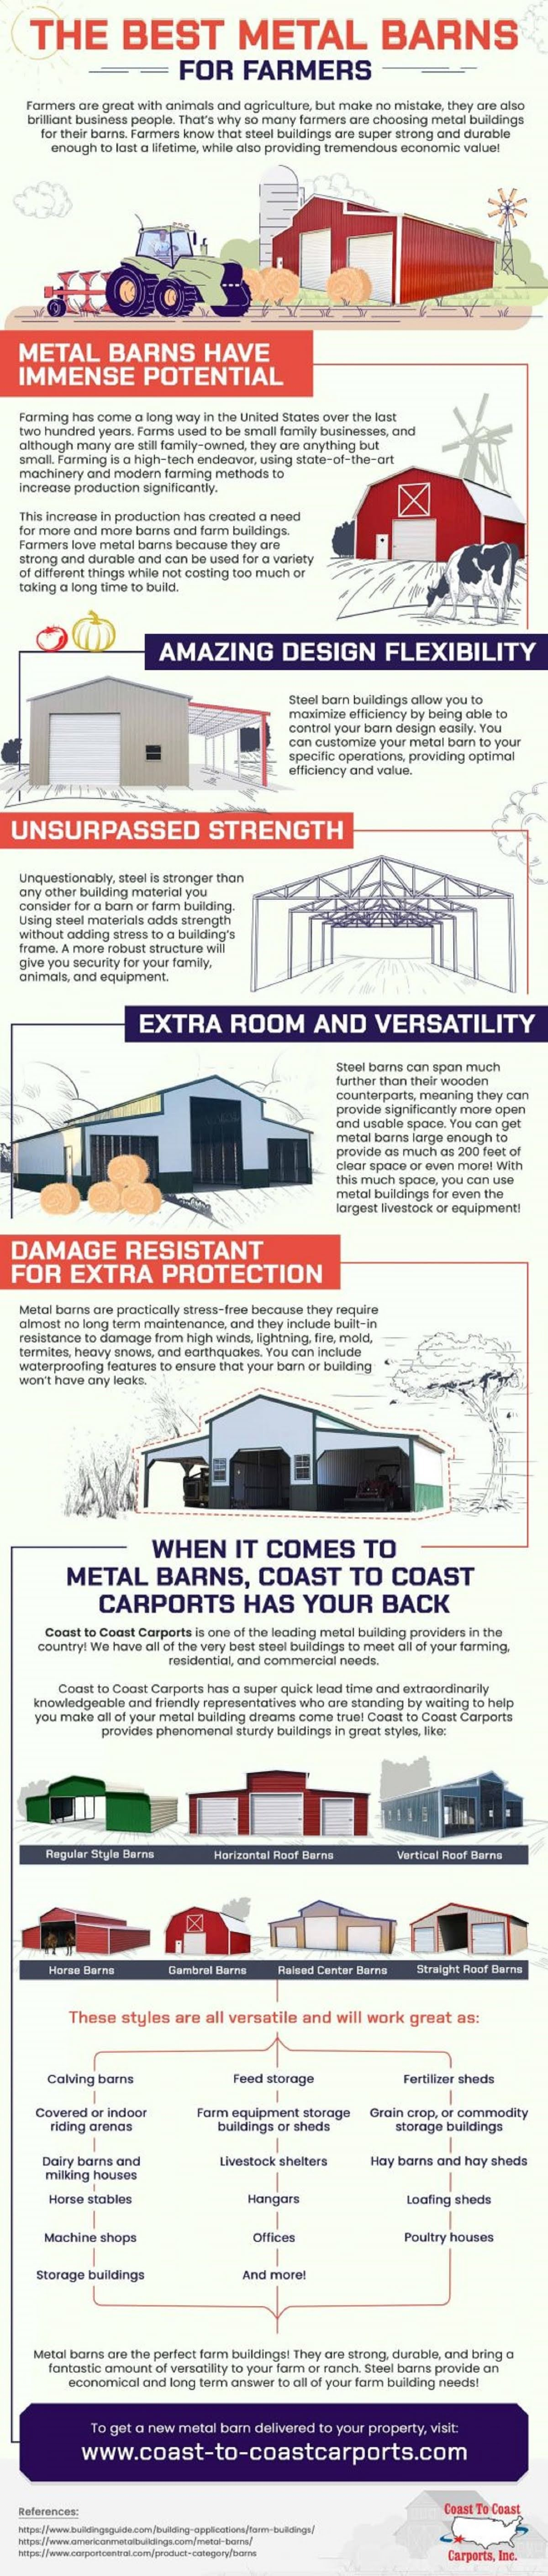 the-best-metal-barns-for-farmers-infographic